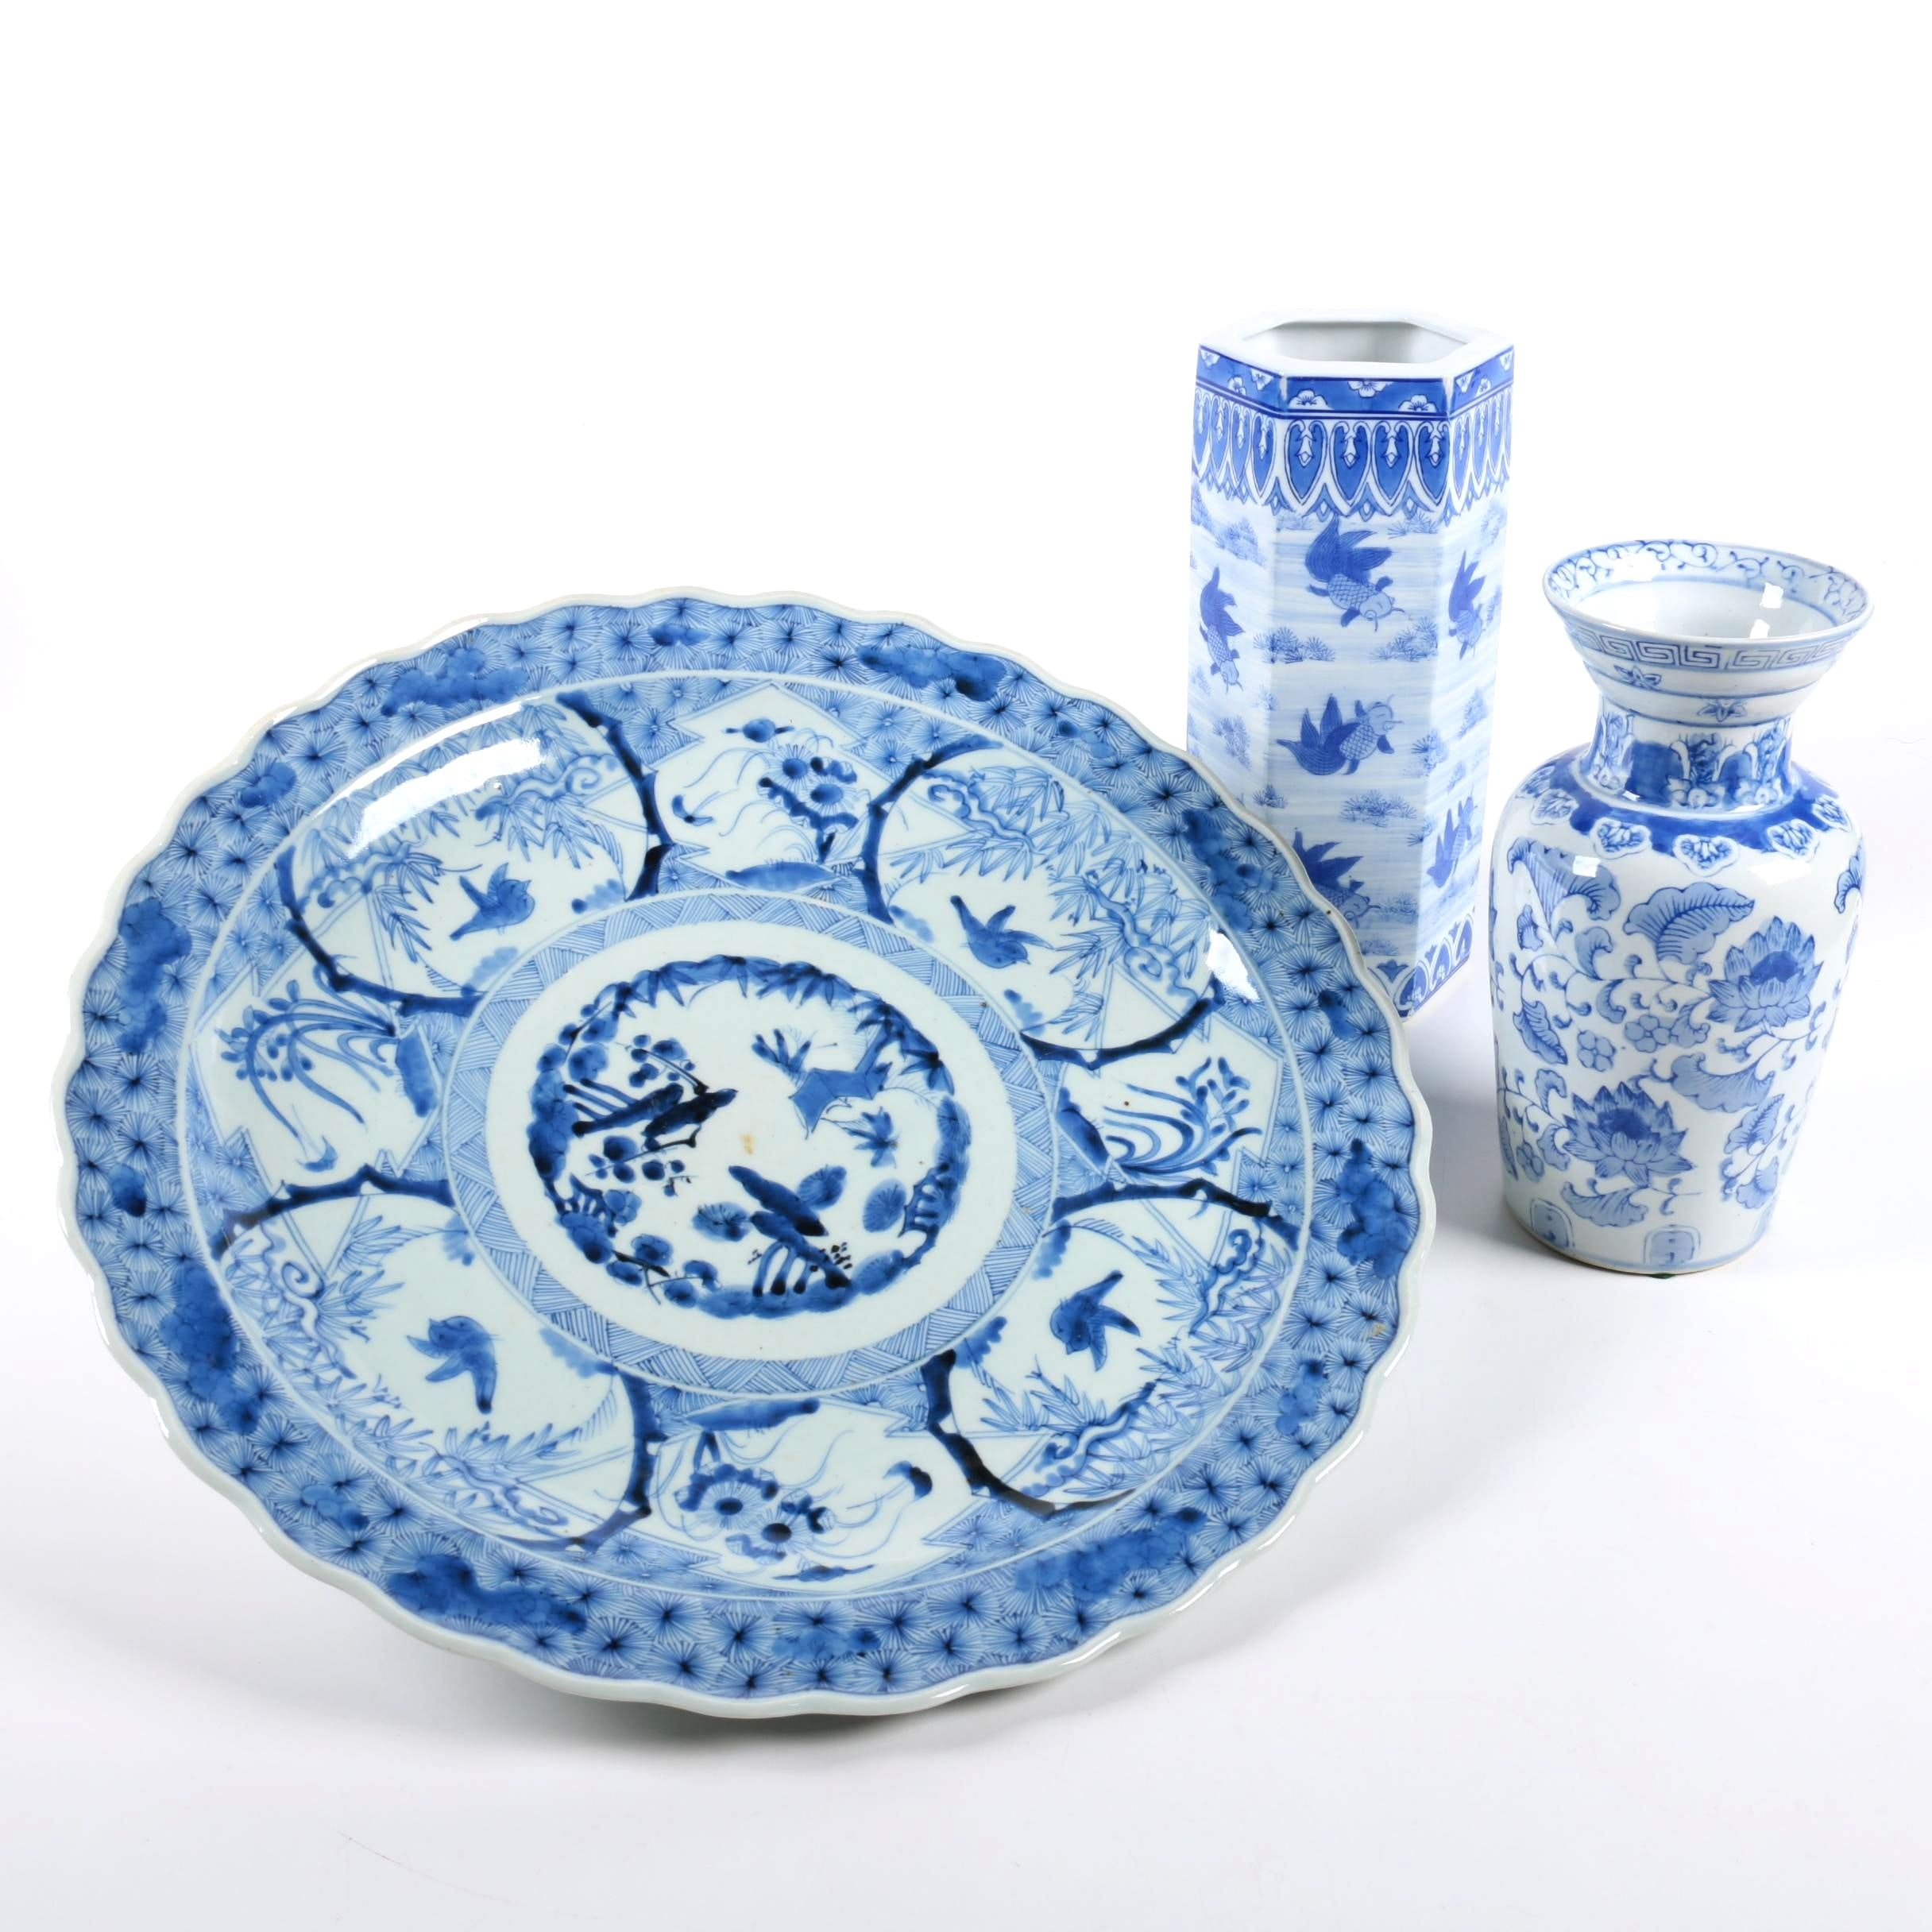 Blue and White Chinese Vases and Plate